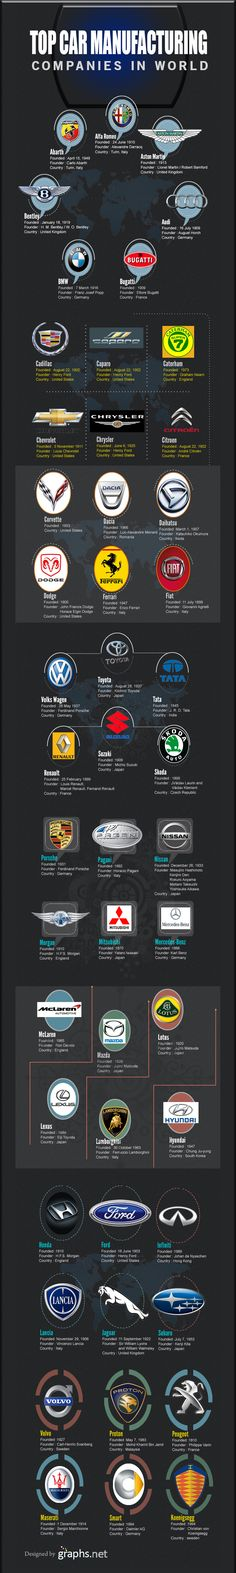 Top Car Manufacturing Companies in the World #Top #Cars #Manufacturing #Companies #World #Infographics